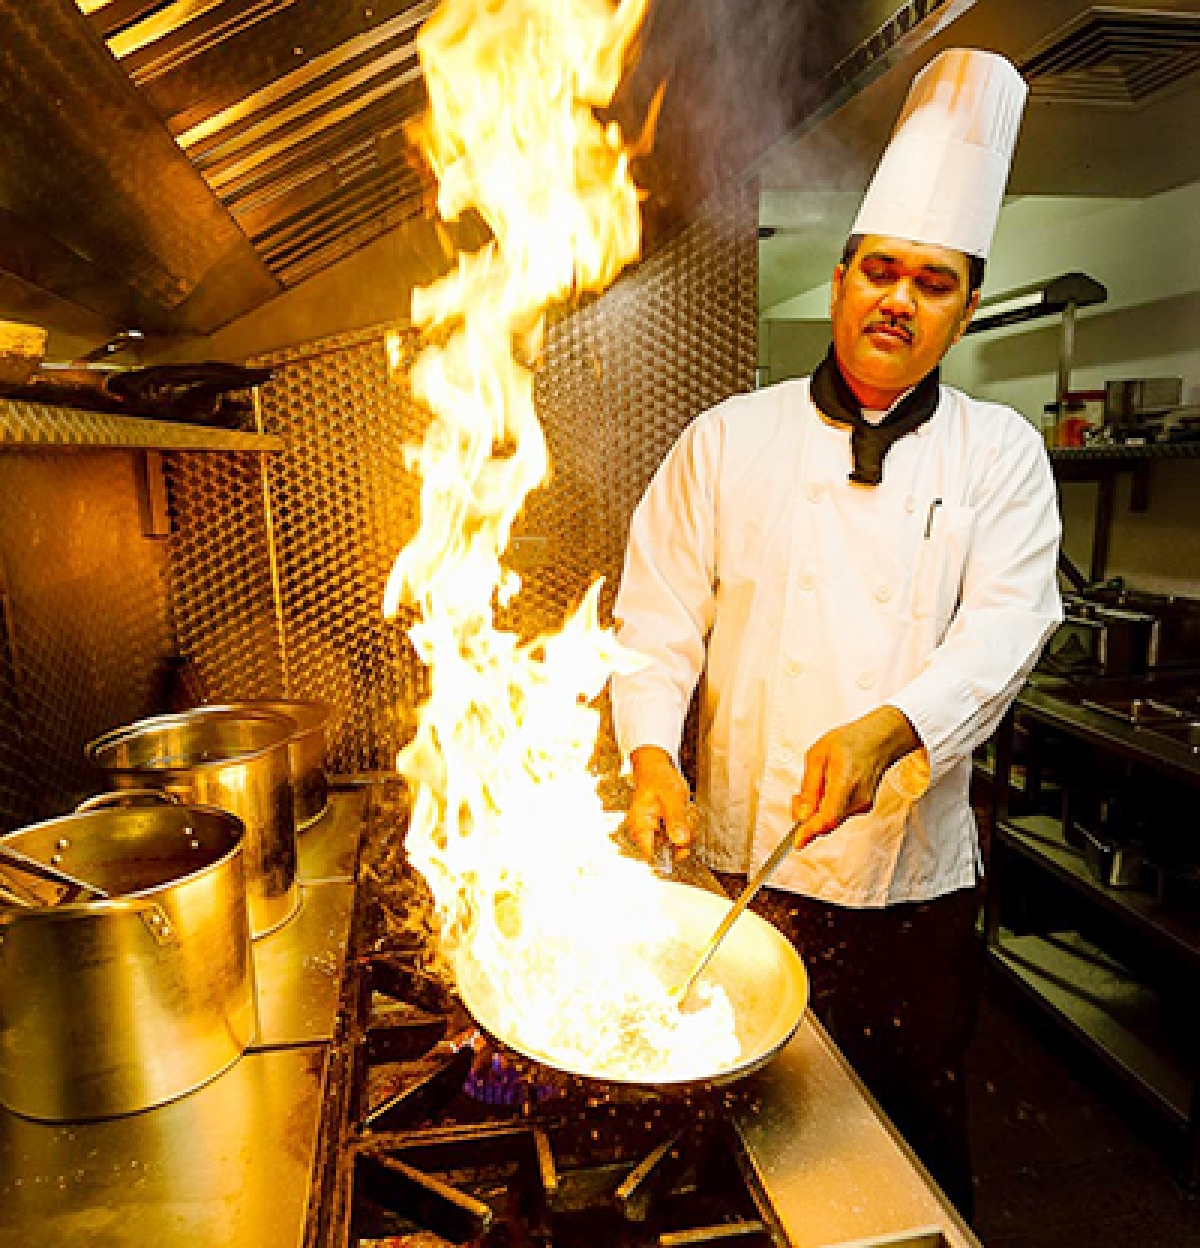 Indian restaurants in UK face closure due to chef shortage